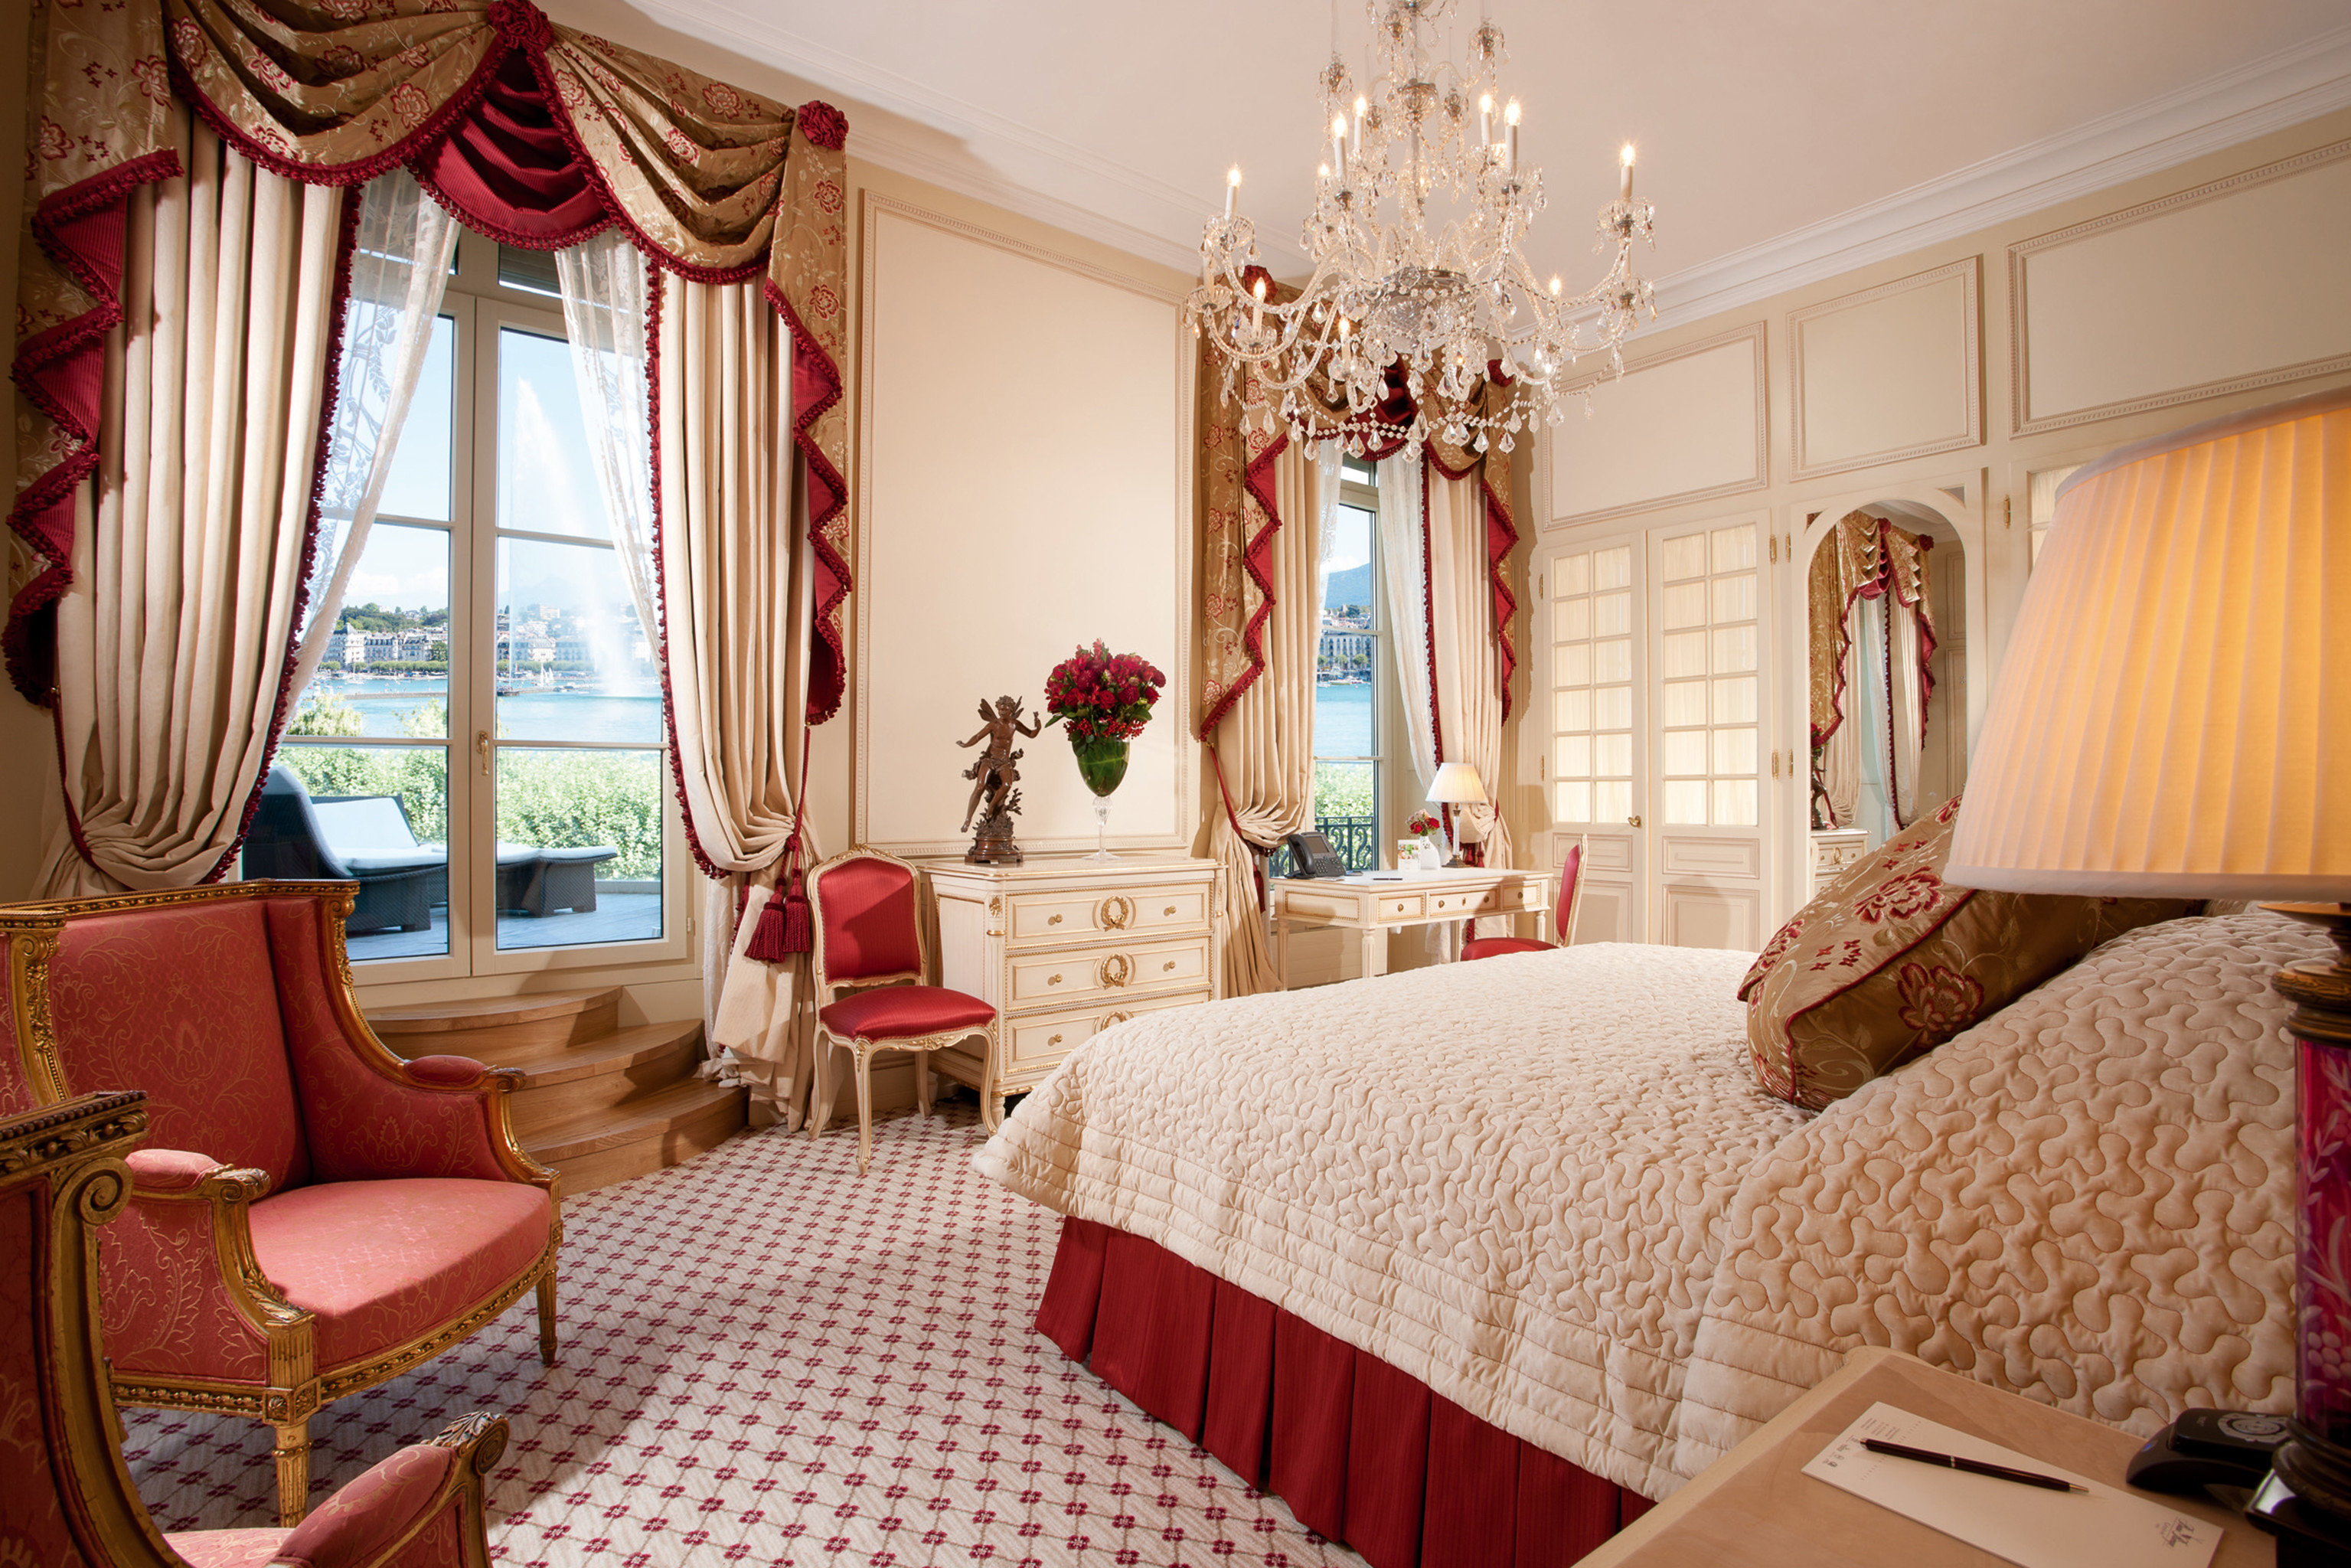 Bedroom Classic Elegant Historic Luxury Patio Suite Waterfront property chair living room home cottage curtain